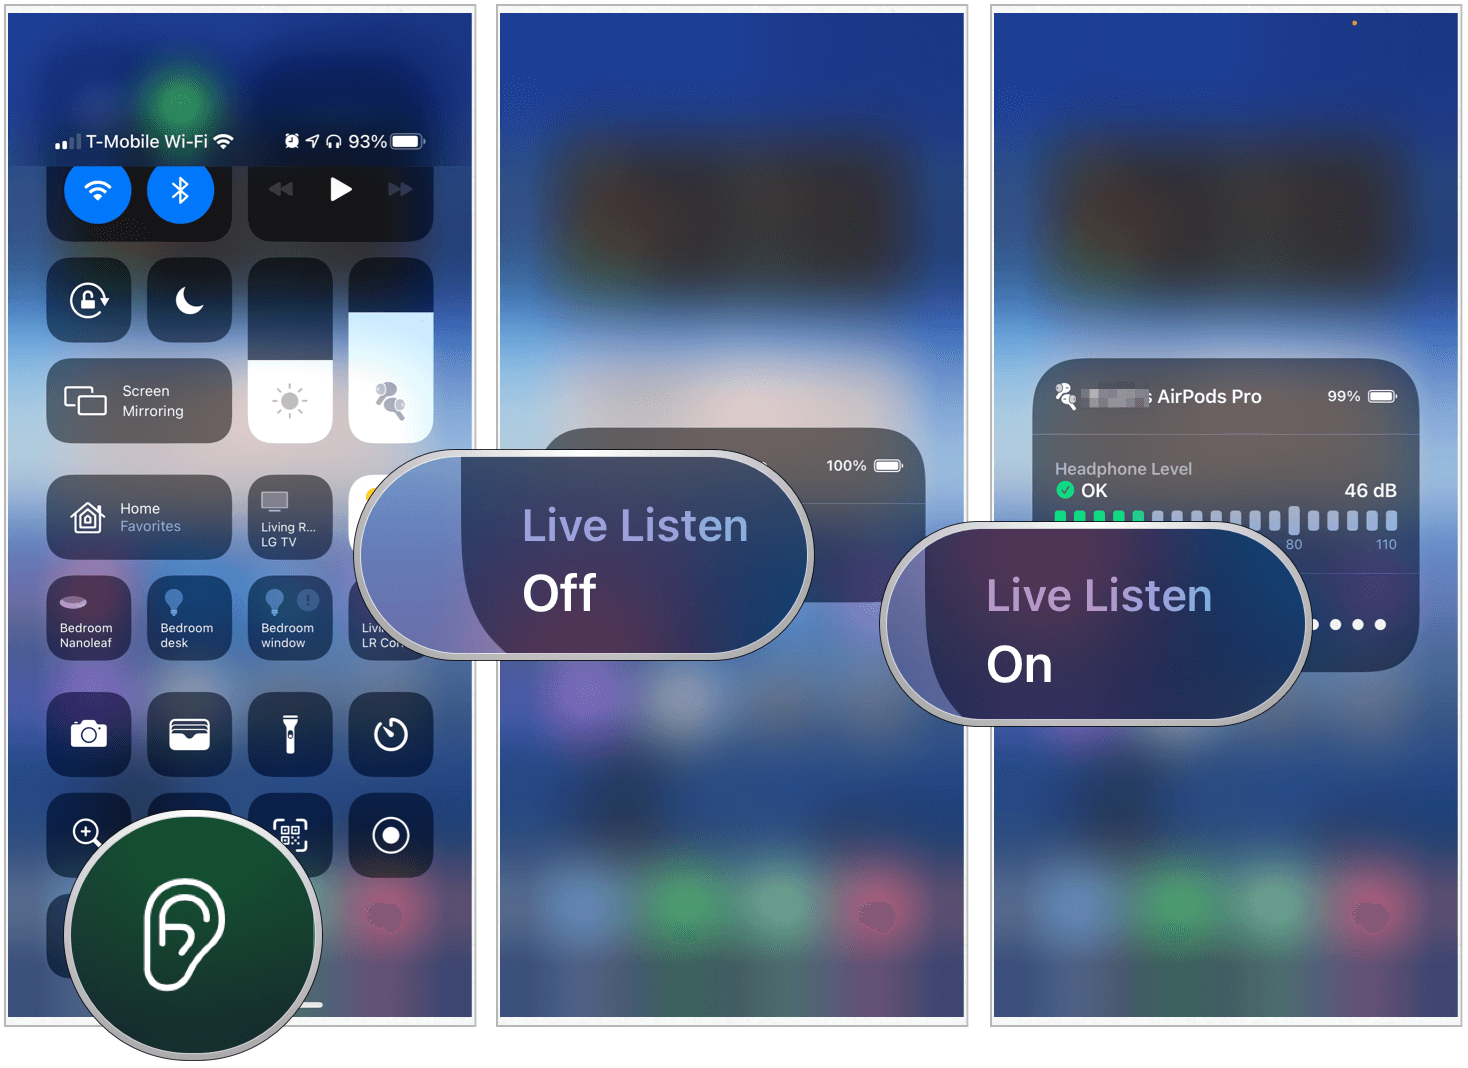 iPhone using Live Listen